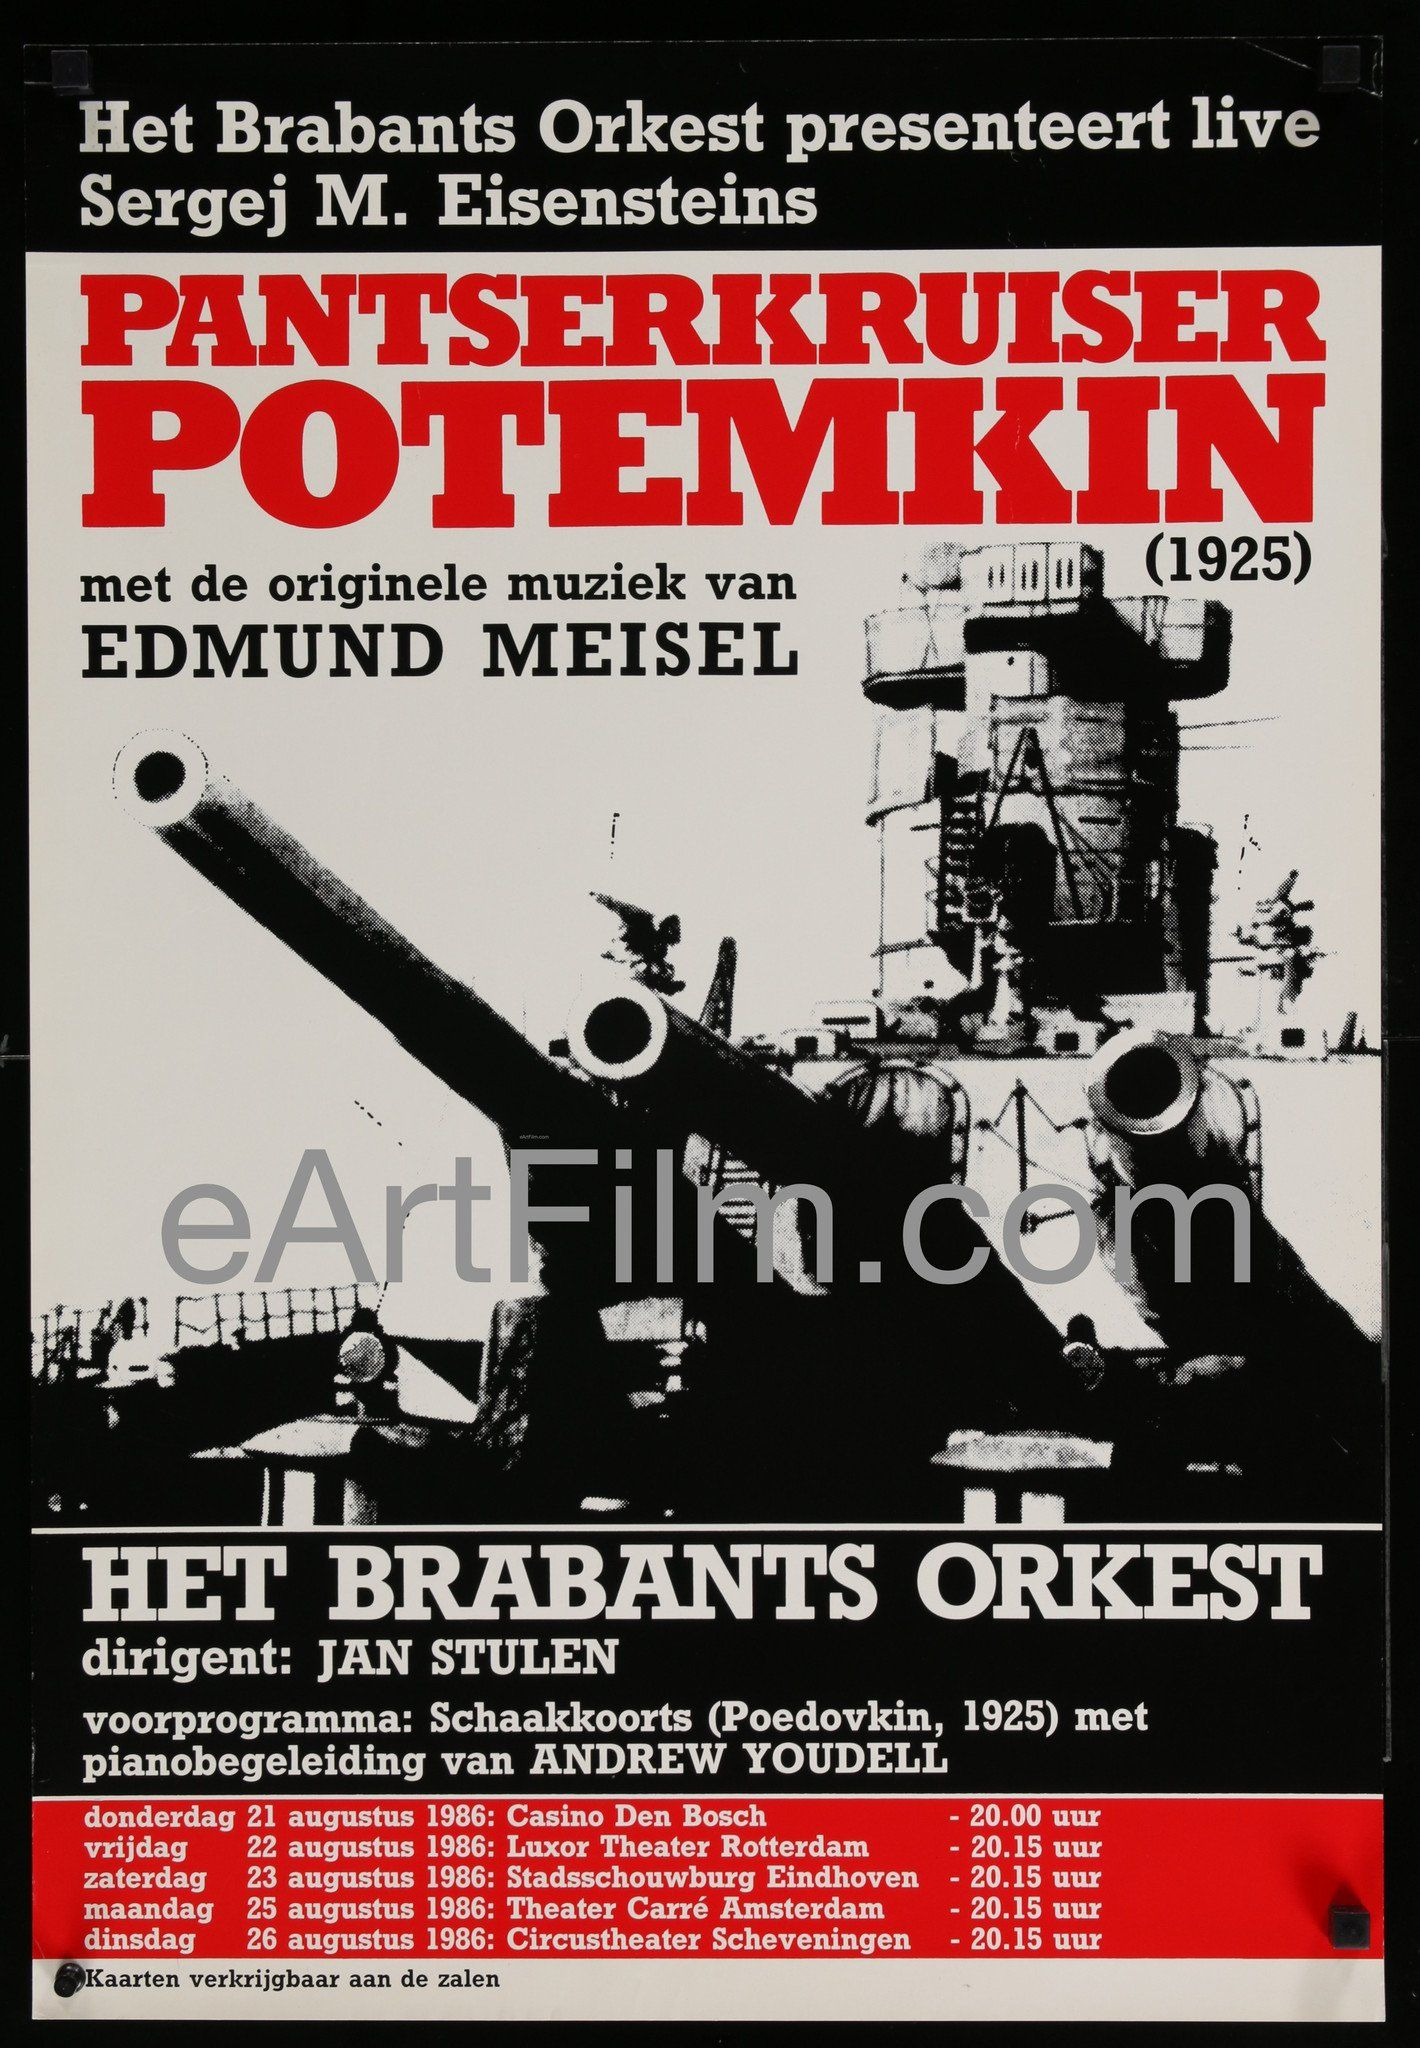 December 5 1926 #SergeiEisenstein's #BattleshipPotemkin is released in the #US. #NYC #Eisenstein #editing #directors https://eartfilm.com/products/battleship-potemkin-bronenosets-potemkin-r1986-1925-original-vintage-movie-poster  Battleship Potemkin R1986-1925 18.75x27.5 Original Denmark Movie Poster